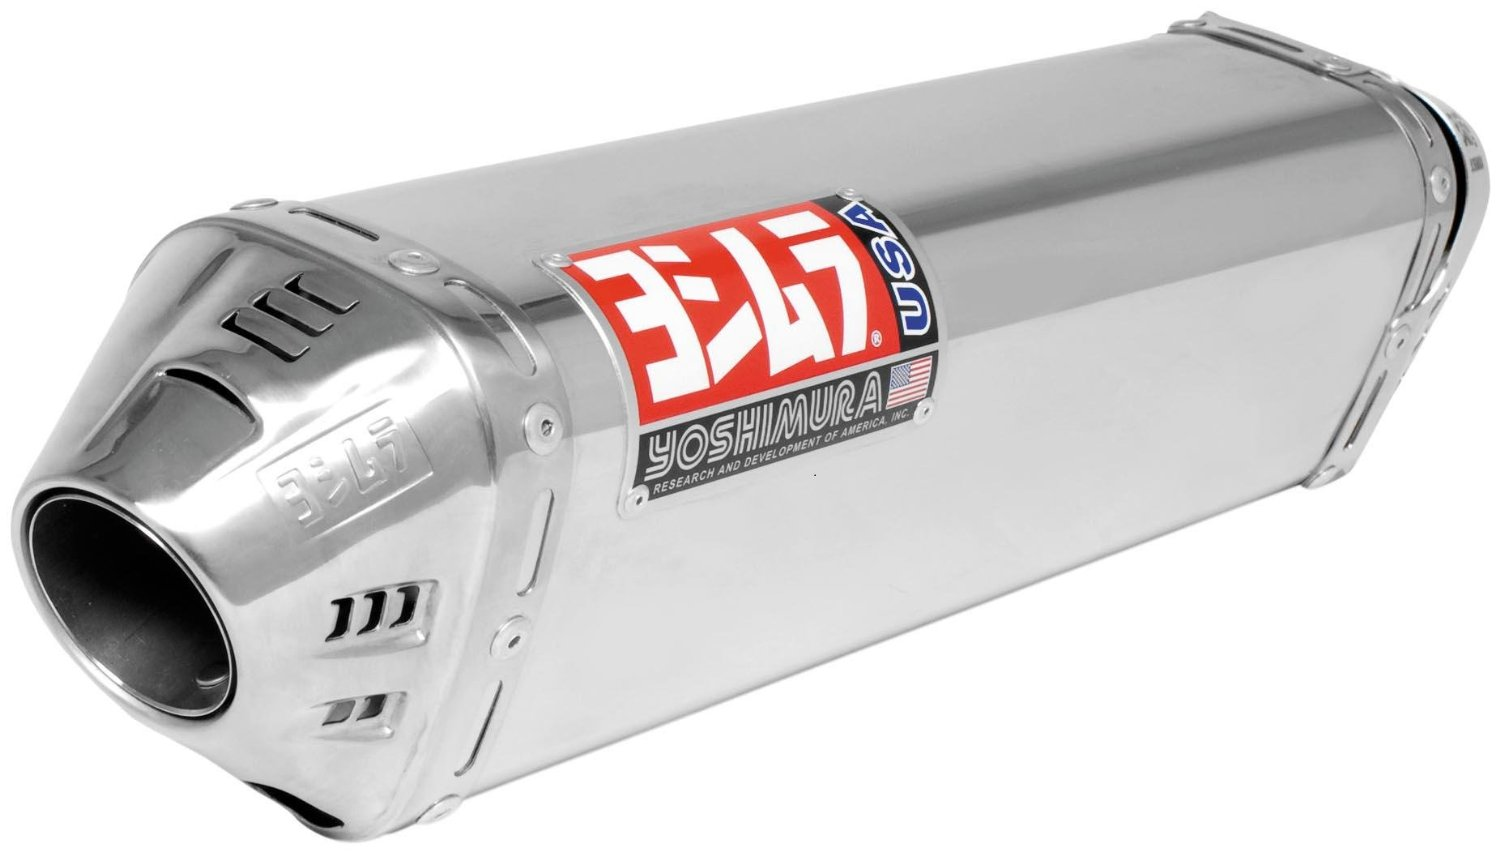 Yoshimura Exhaust System Reviews And Sound Clips